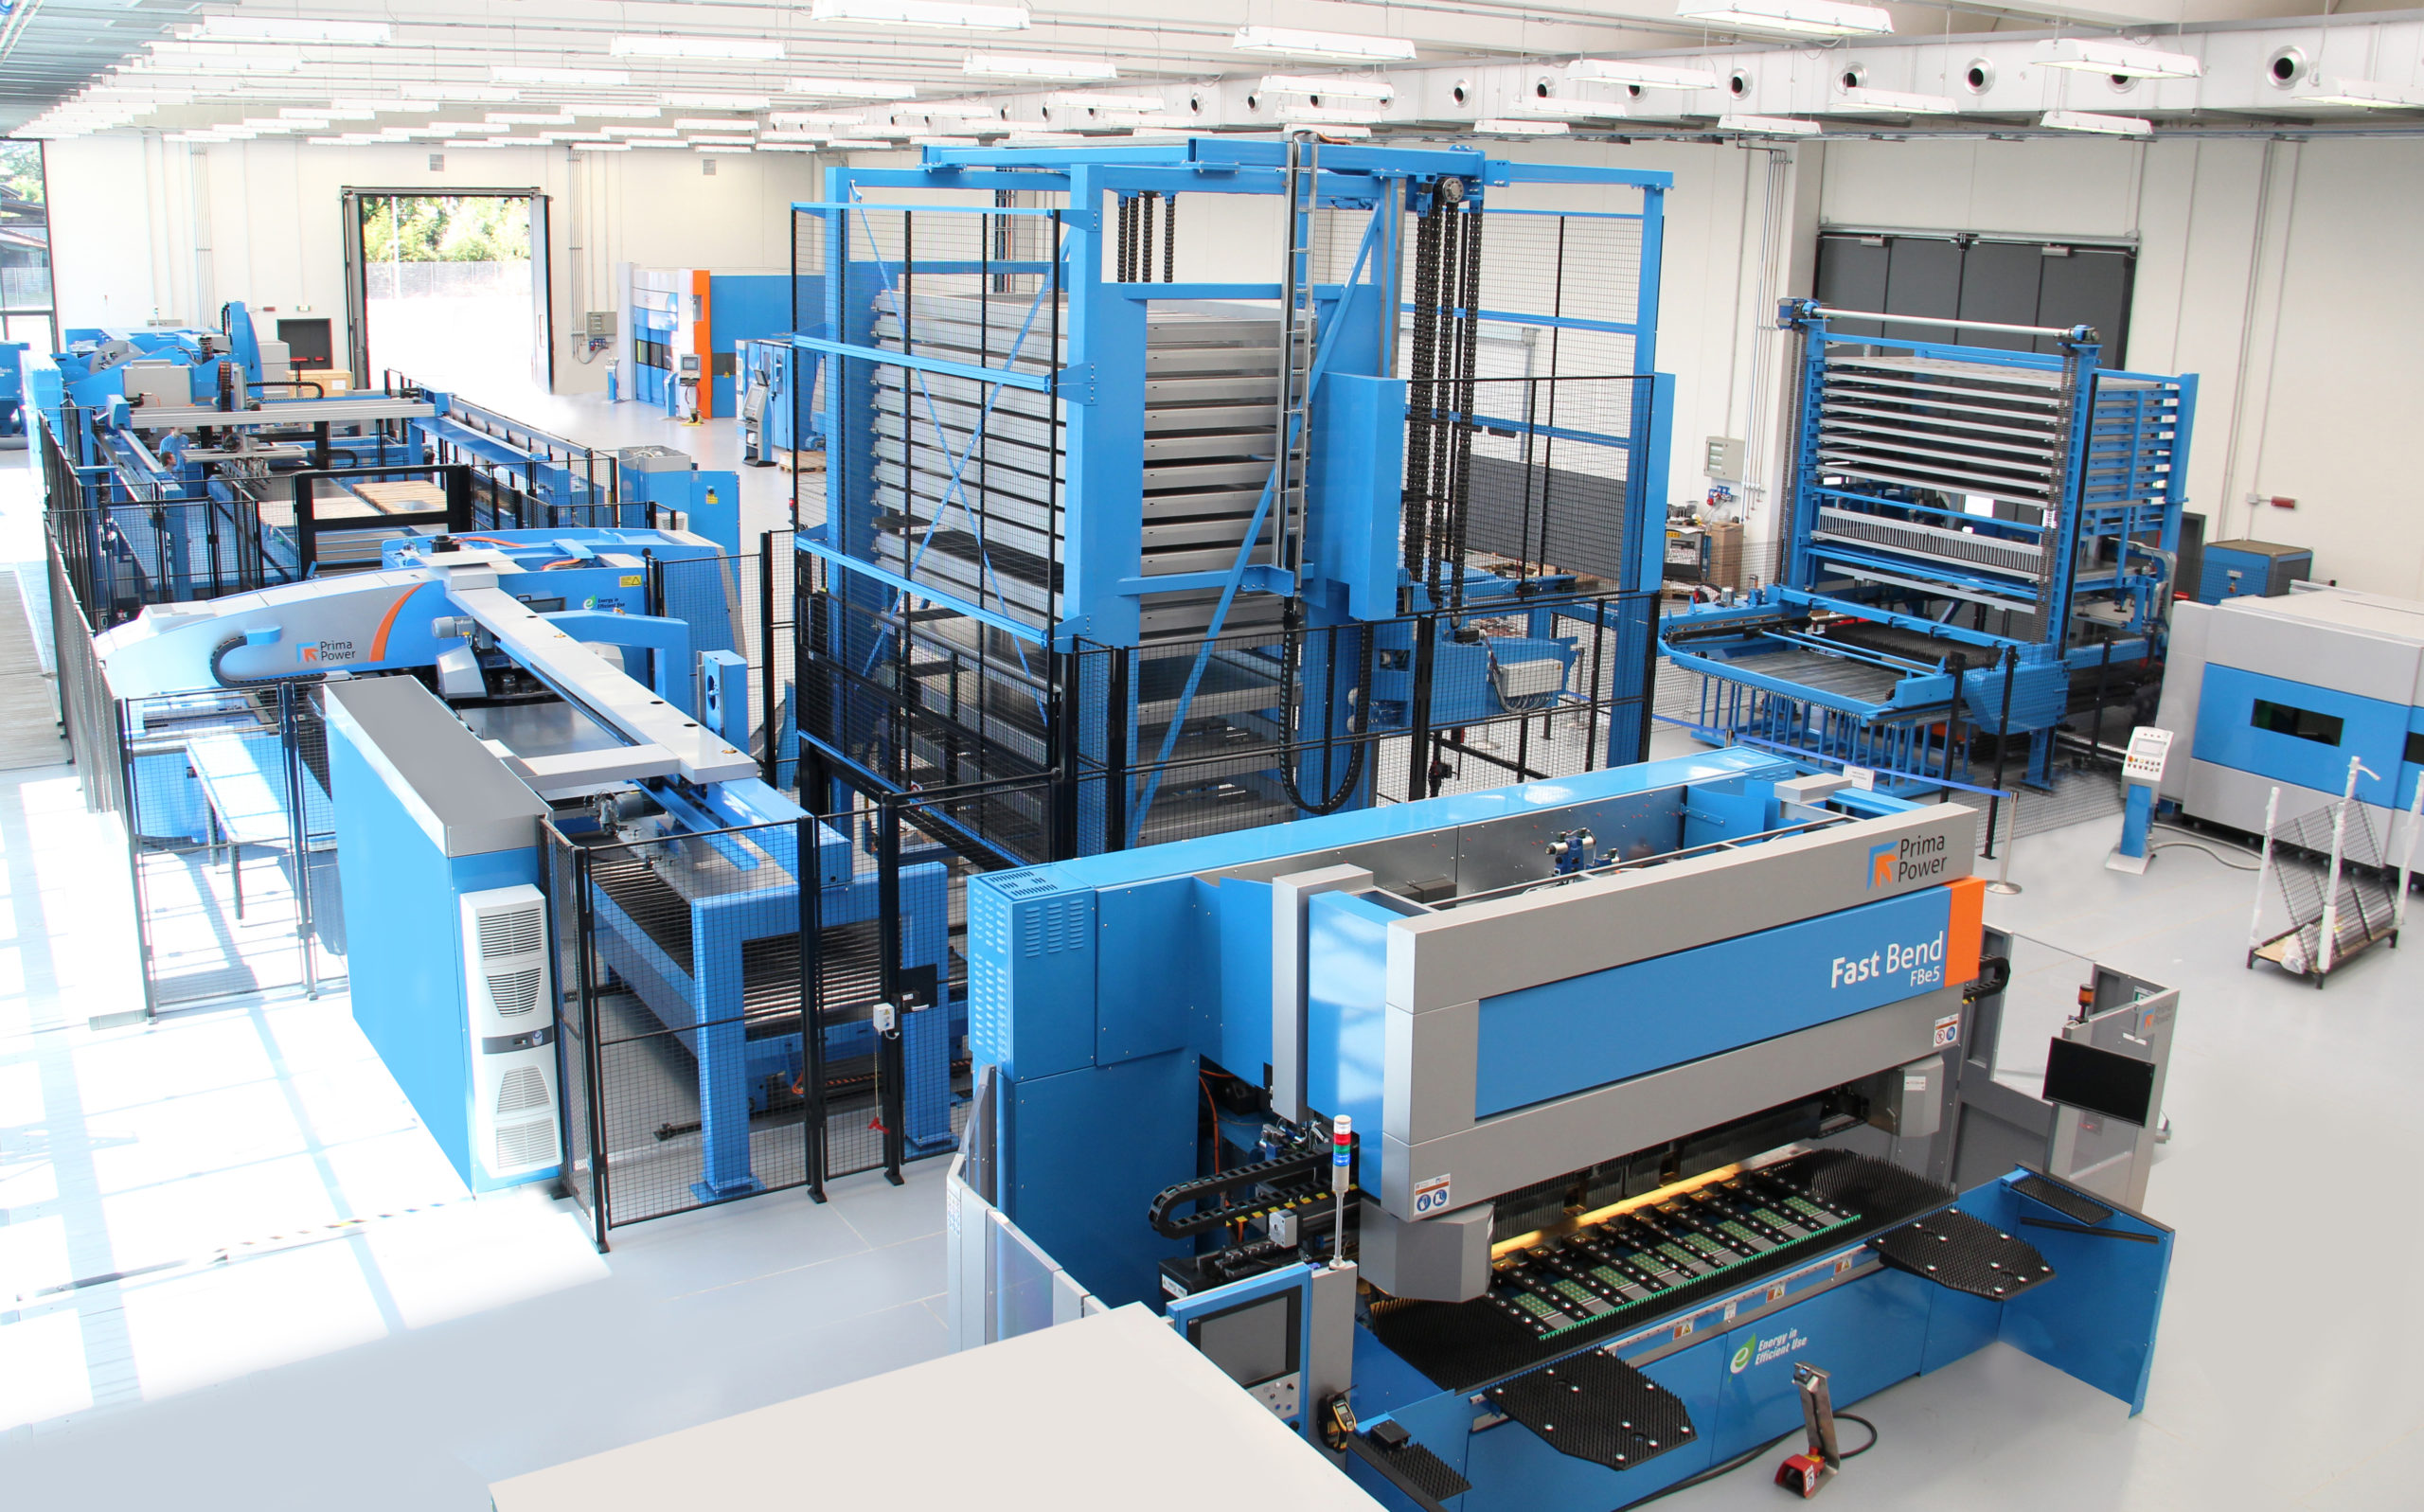 Prima Power's Flexible Manufacturing Systems